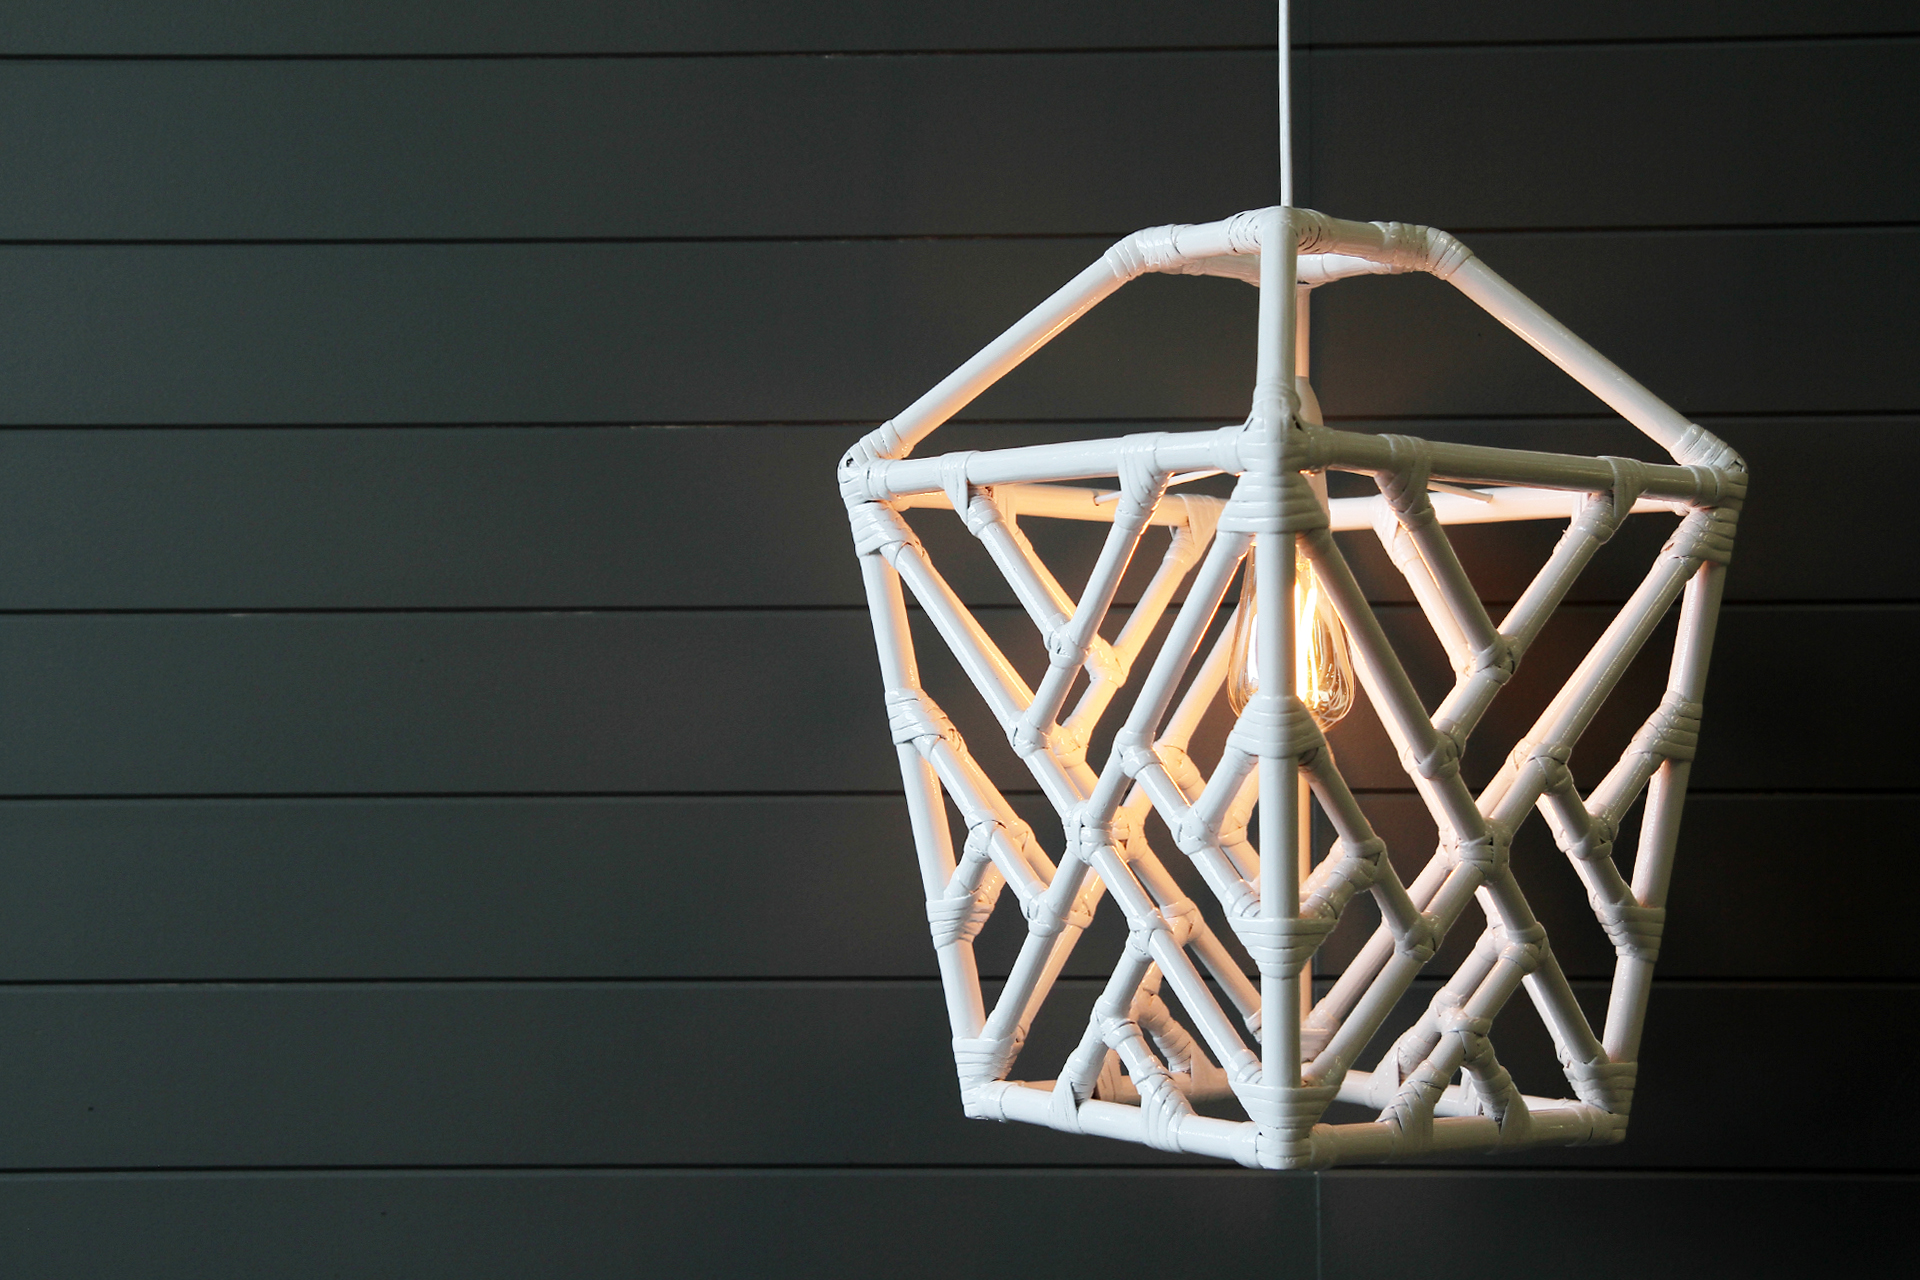 Wicker Pendants  Naturally Cane Rattan and Wicker Furniture